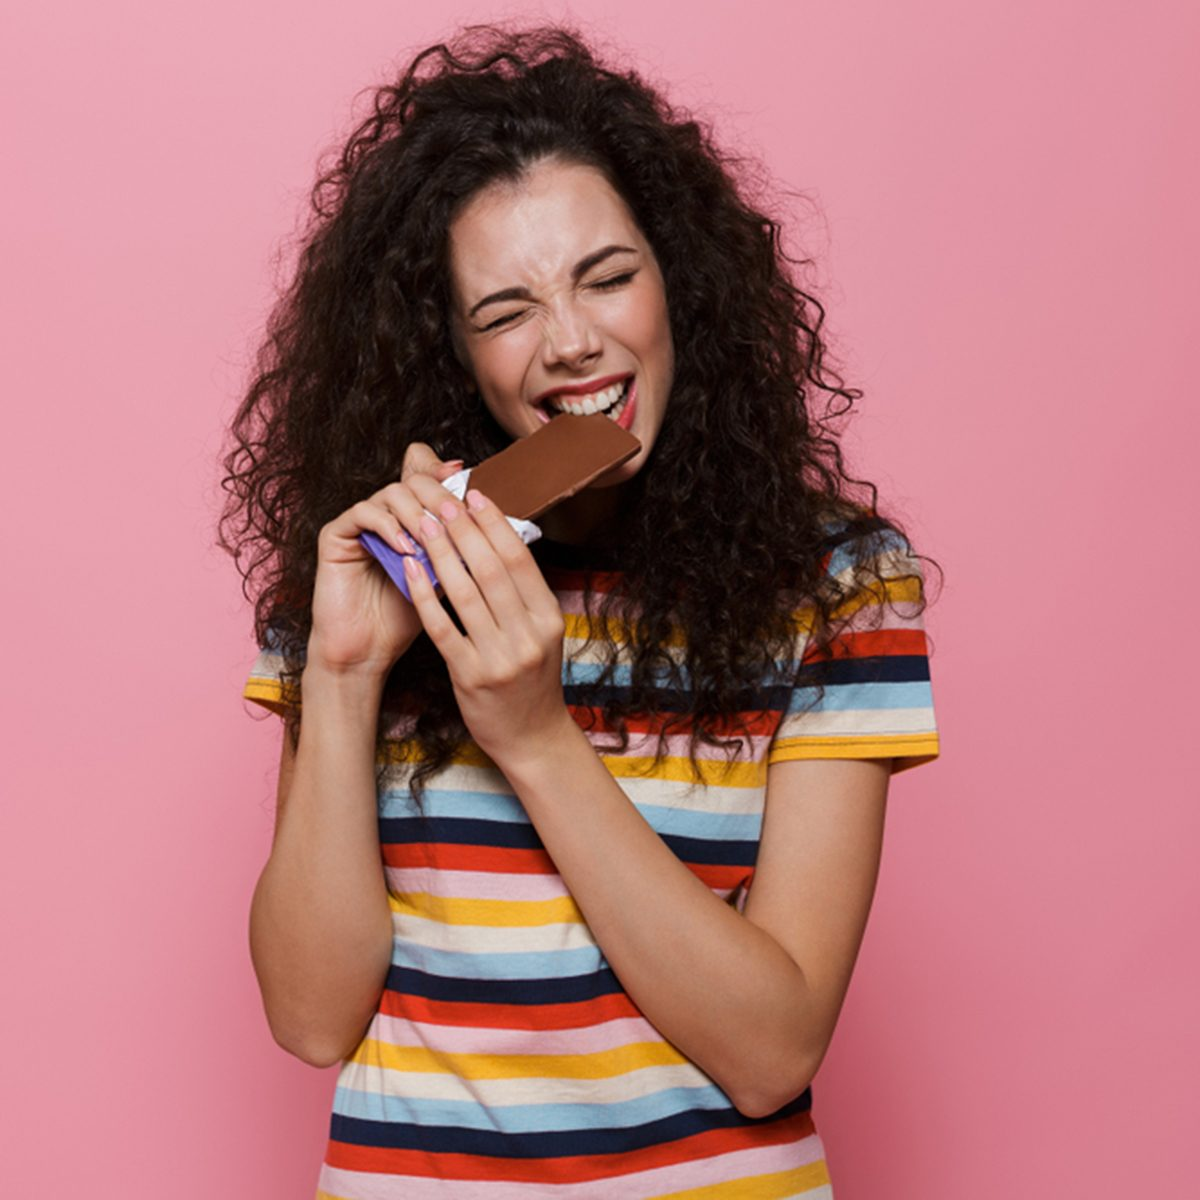 Photo of brunette woman 20s with curly hair eating chocolate bar isolated over pink background